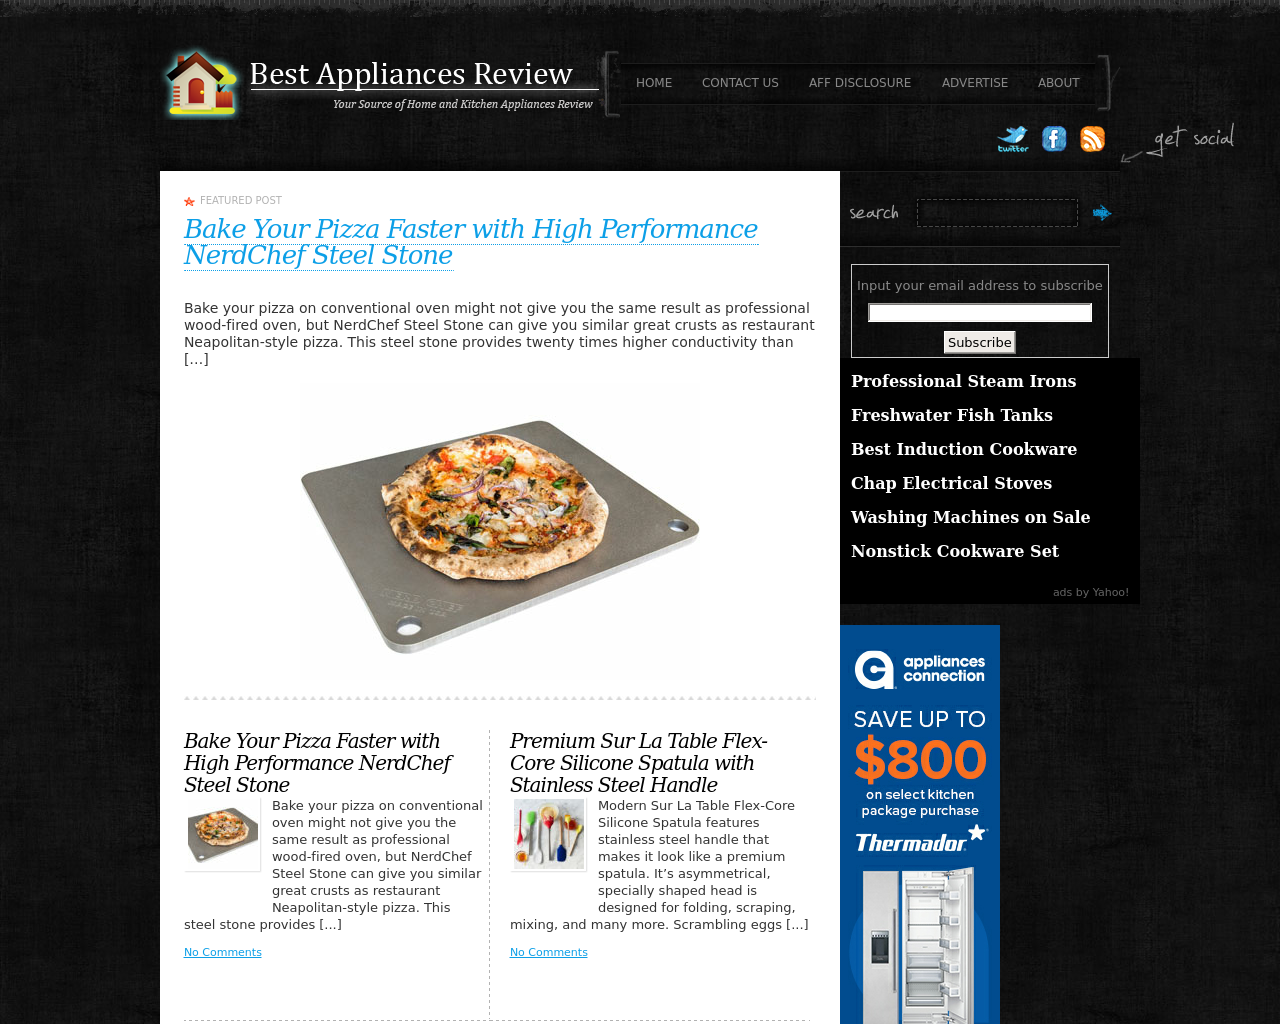 Best-Appliances-Review-Advertising-Reviews-Pricing